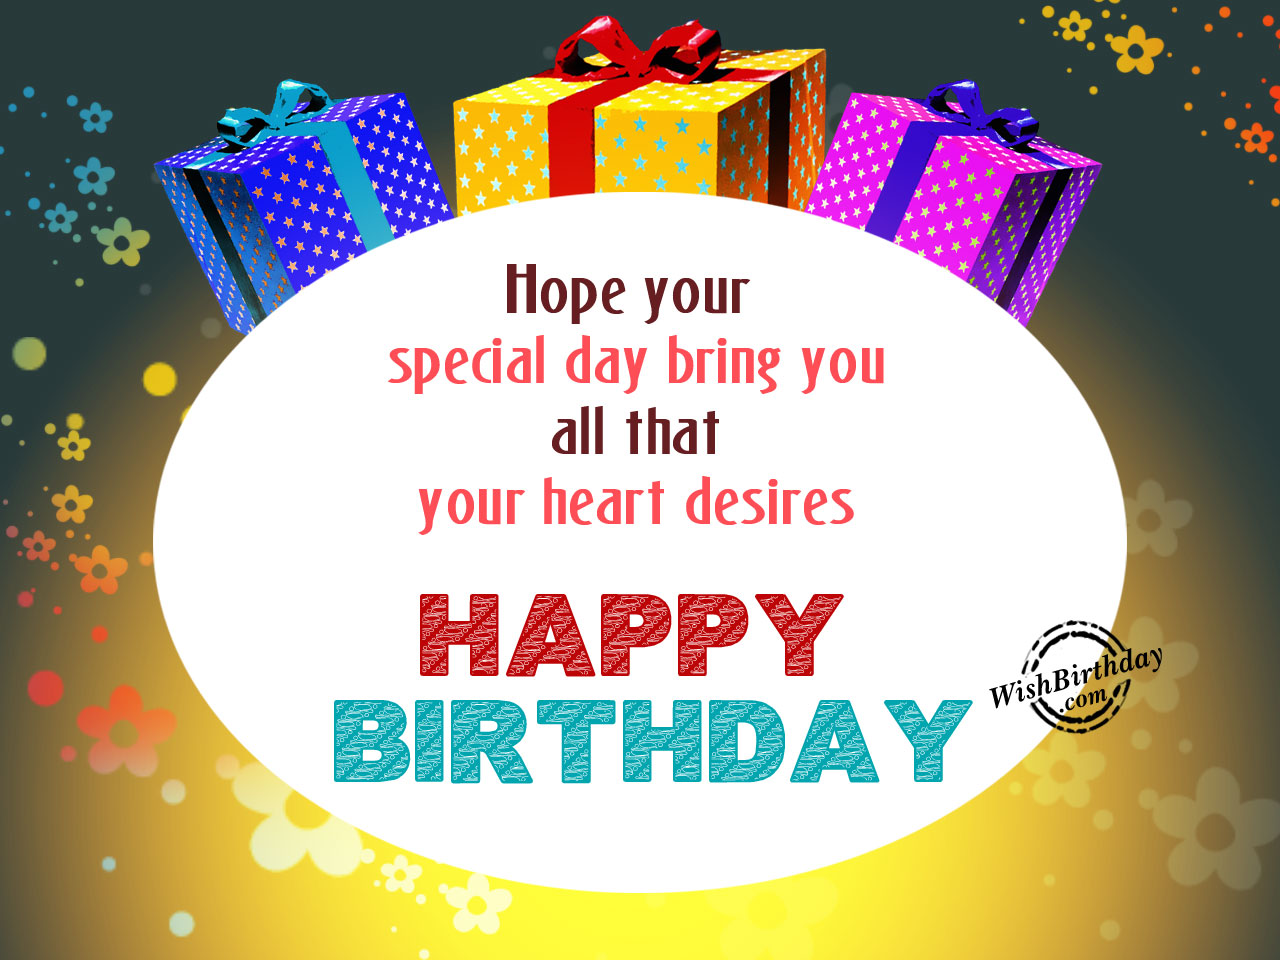 birthday day photo ; Hope-your-day-filled-with-happinessHappy-Birthday-WB09